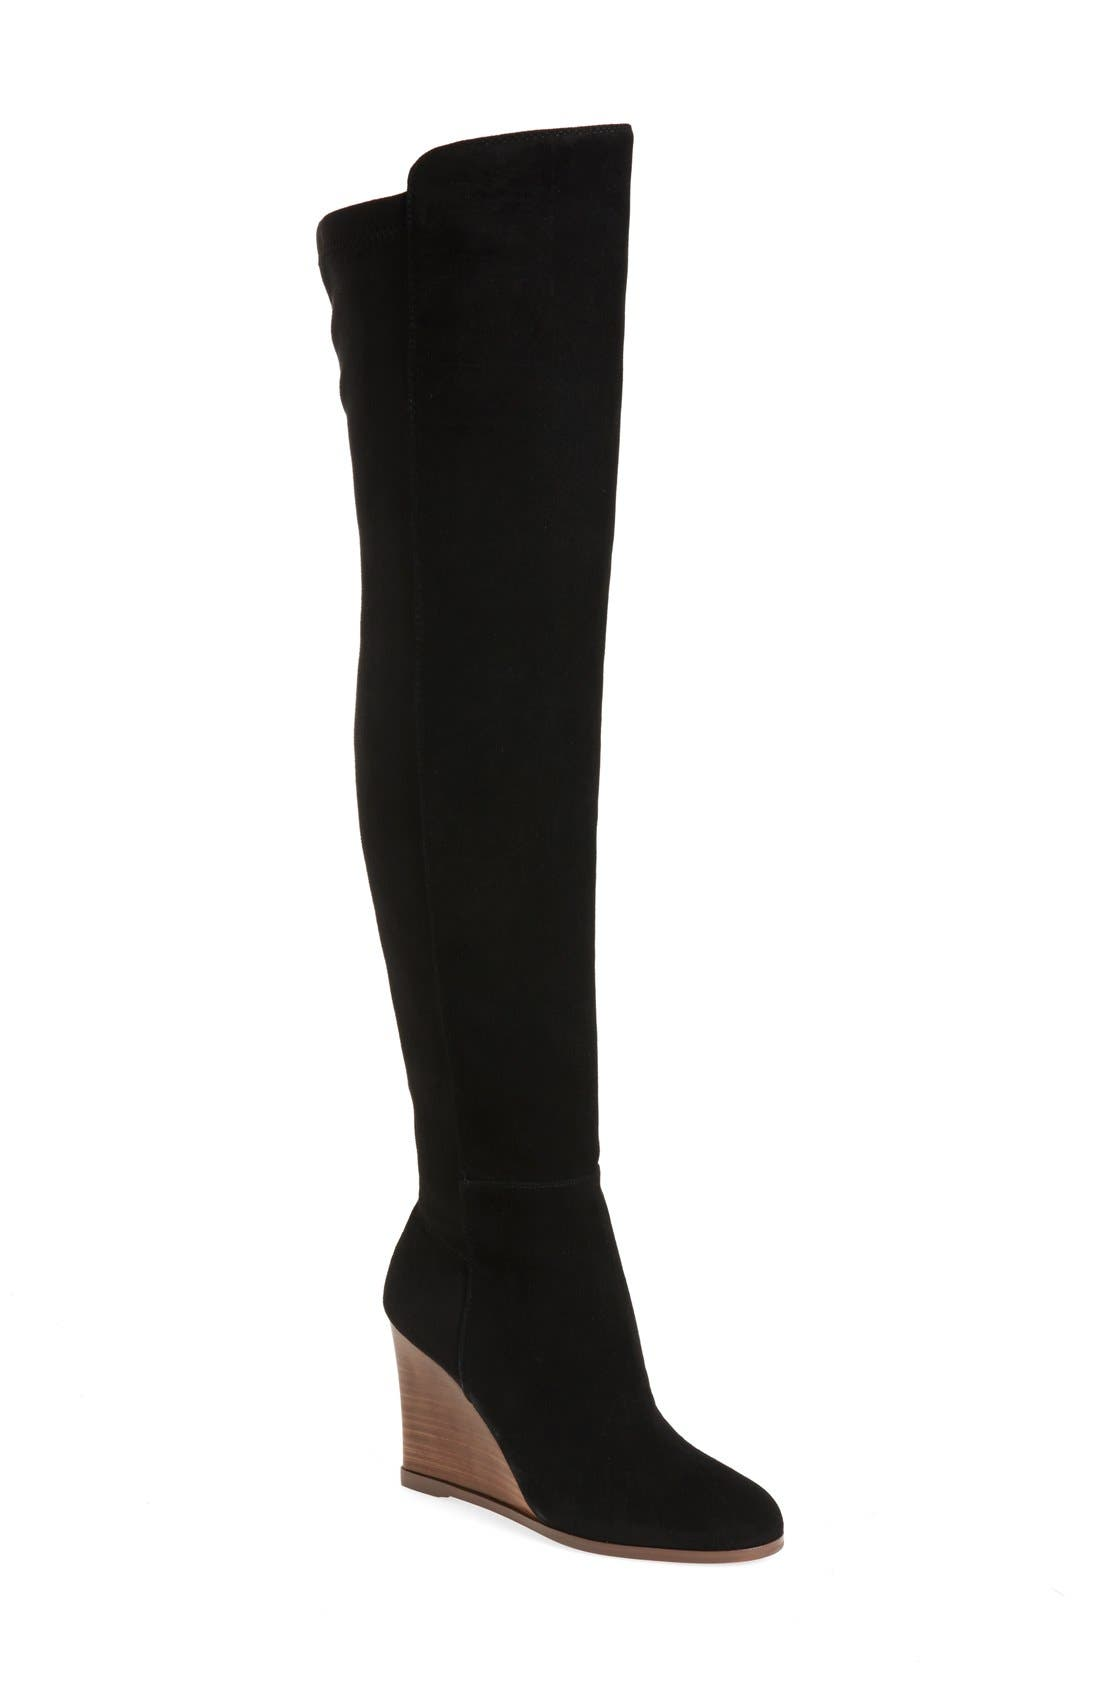 Main Image - Vince Camuto 'Granta' Over the Knee Wedge Boot (Women)